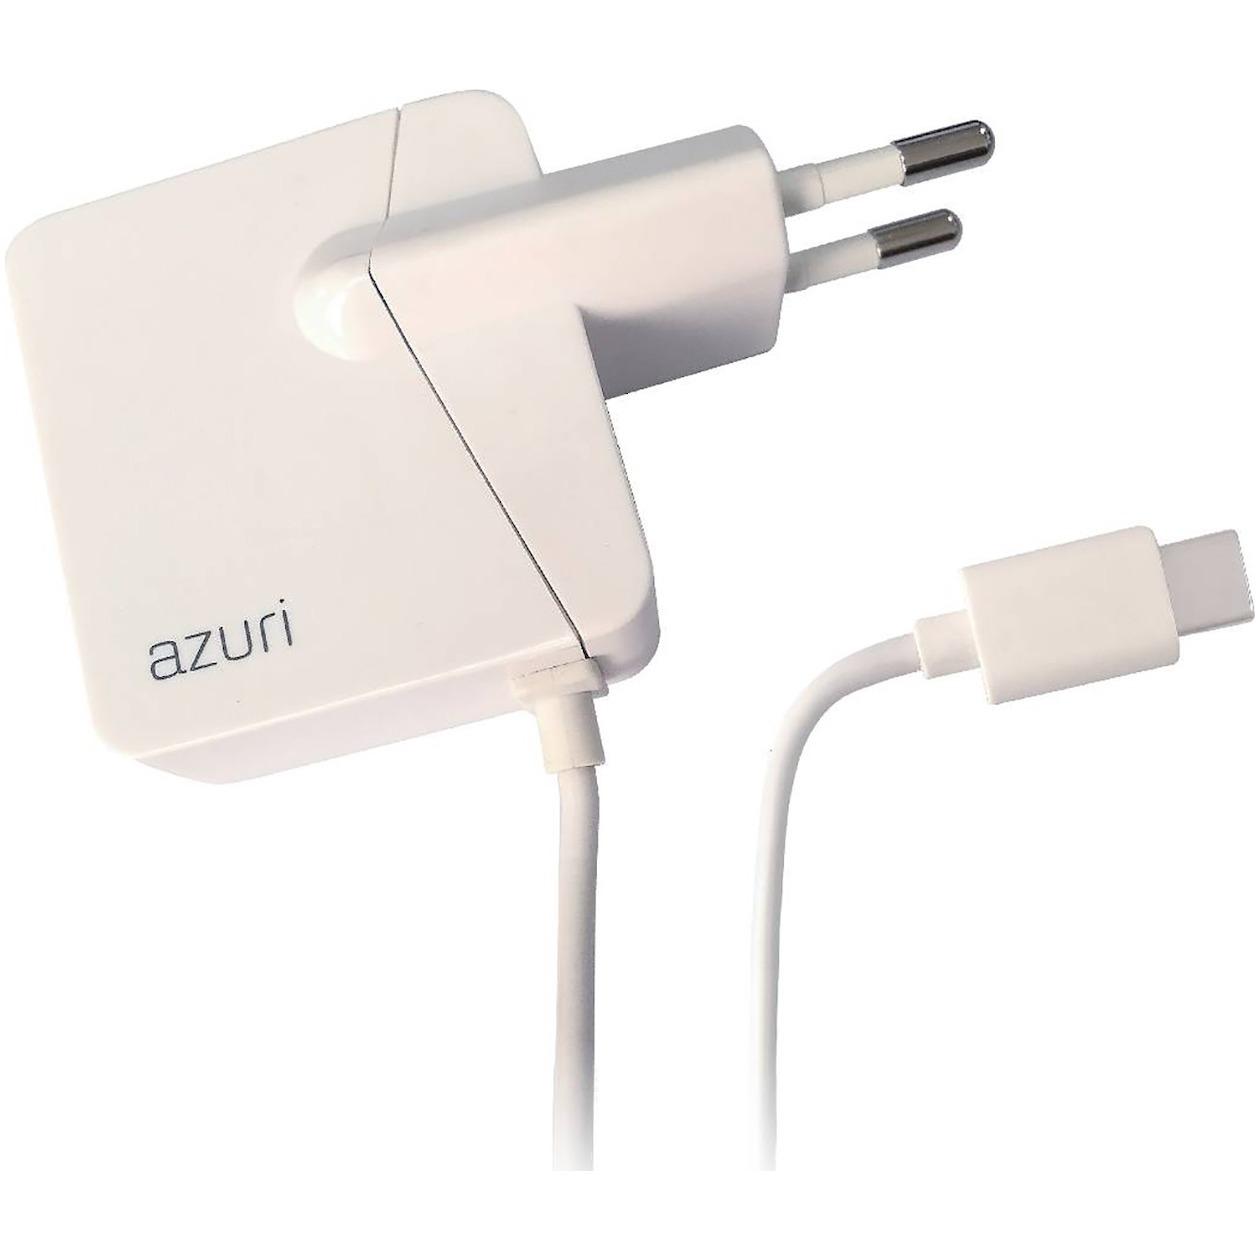 Azuri thuislader USB type C fix cable 2.4amp-1.2m-wit